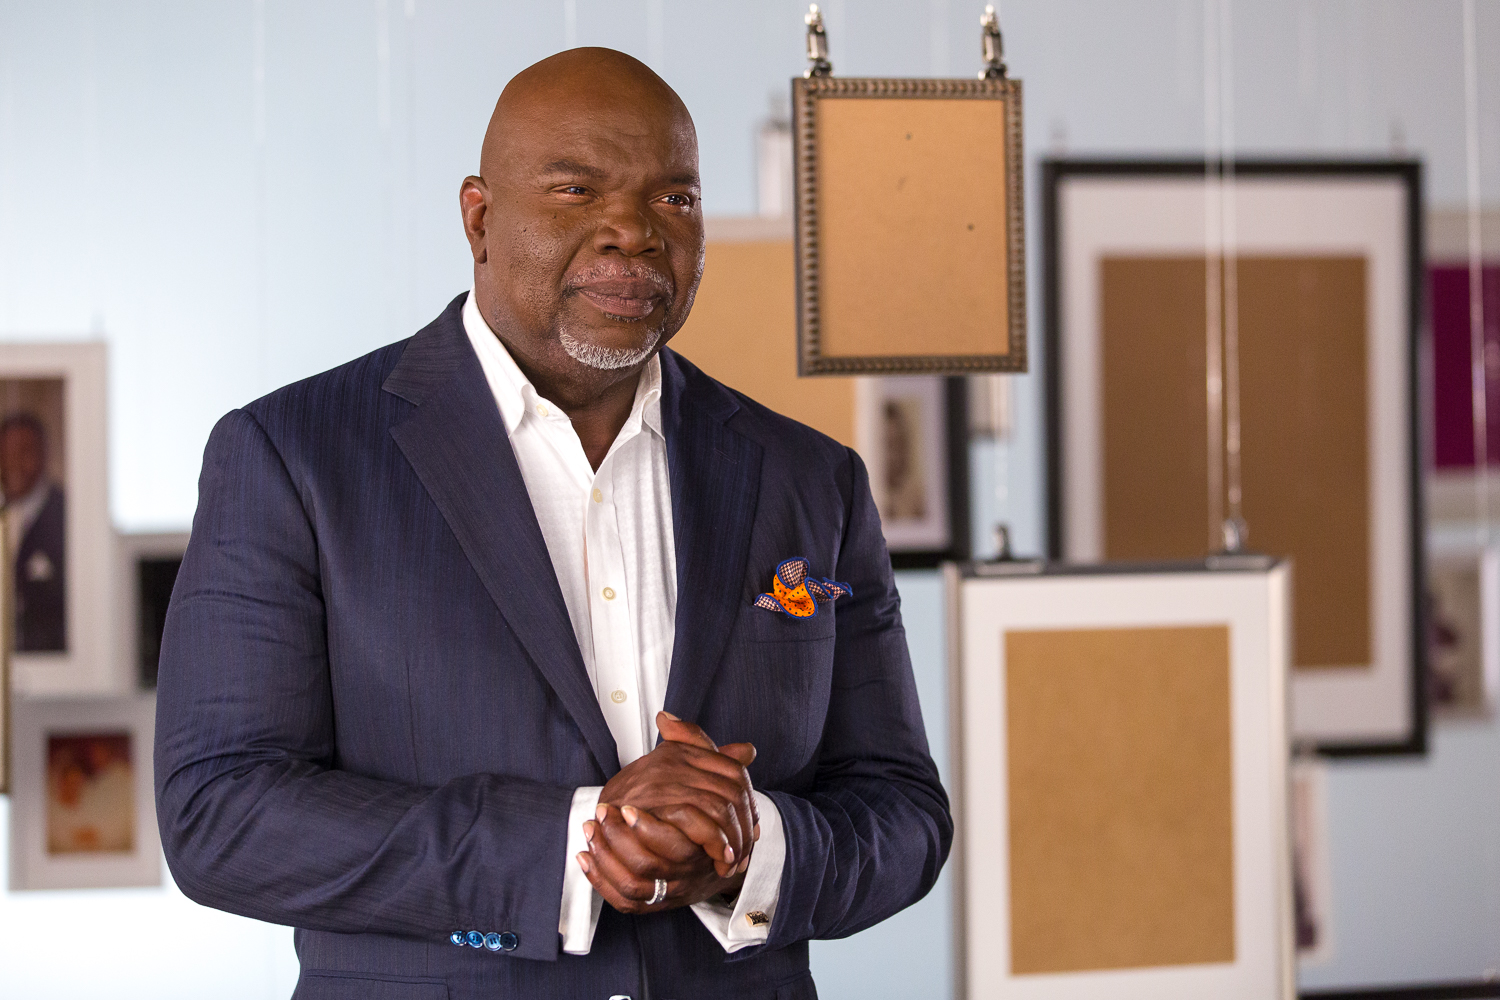 Preaching to the Choir: Bishop T.D. Jakes